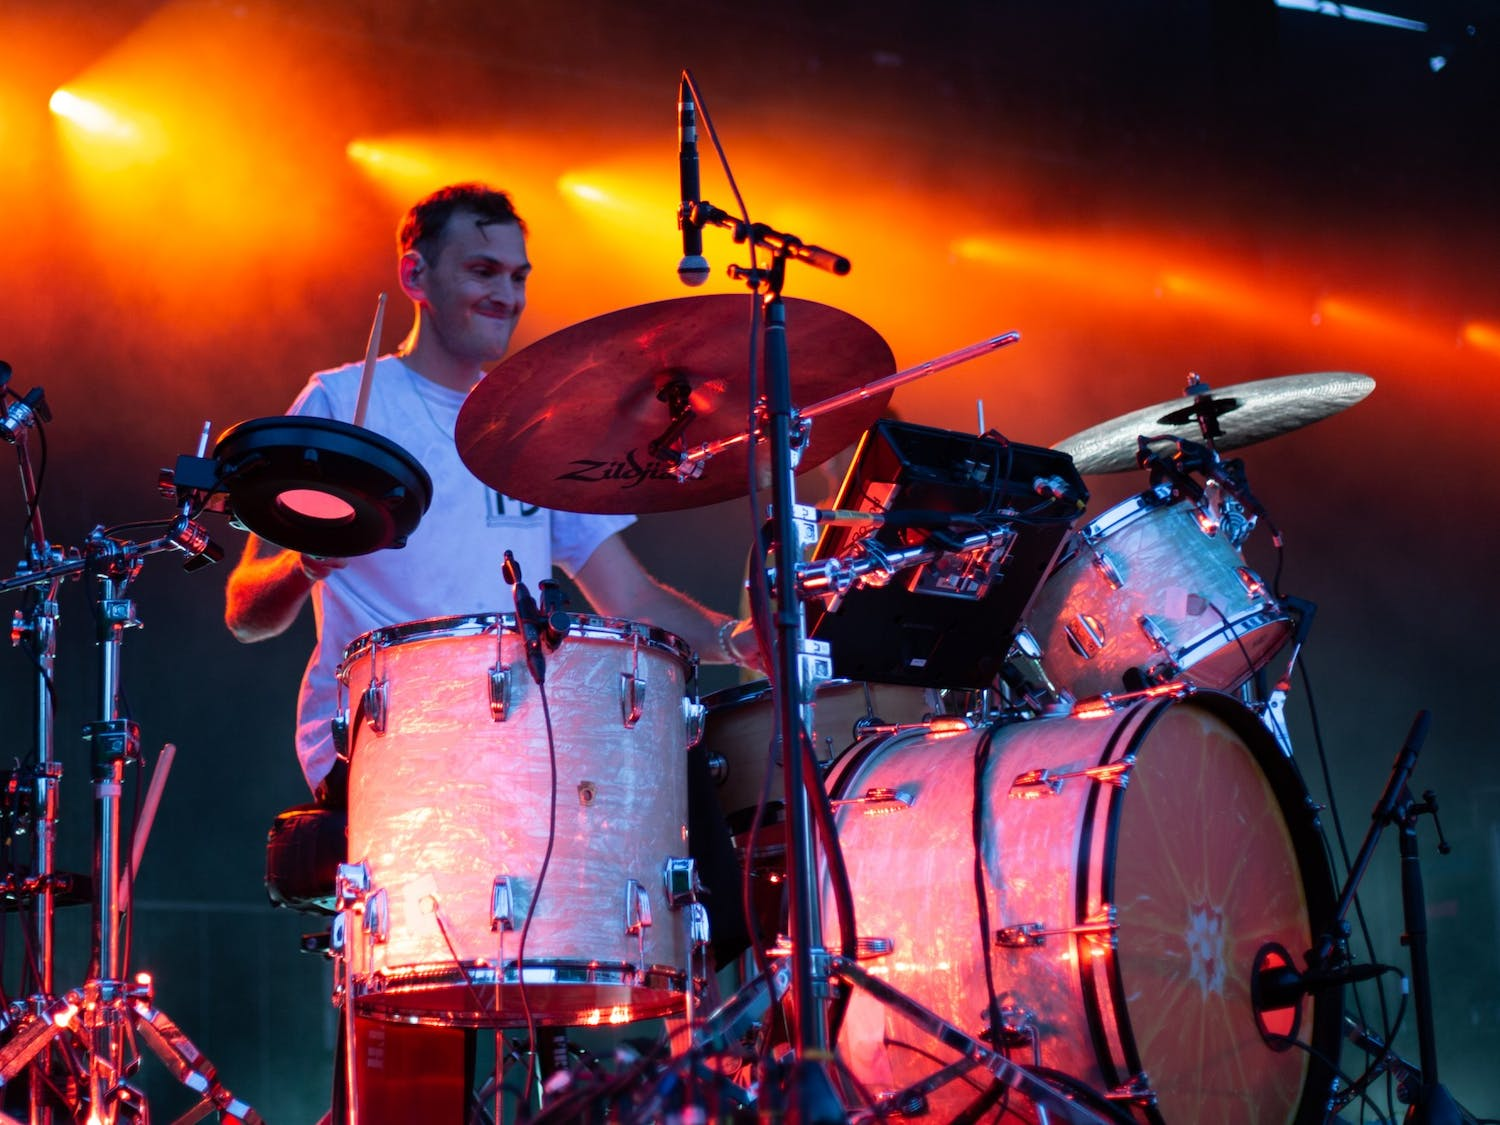 Joe Seaward, drummer for Glass Animals, plays a song in Carrboro, NC on Aug. 28.